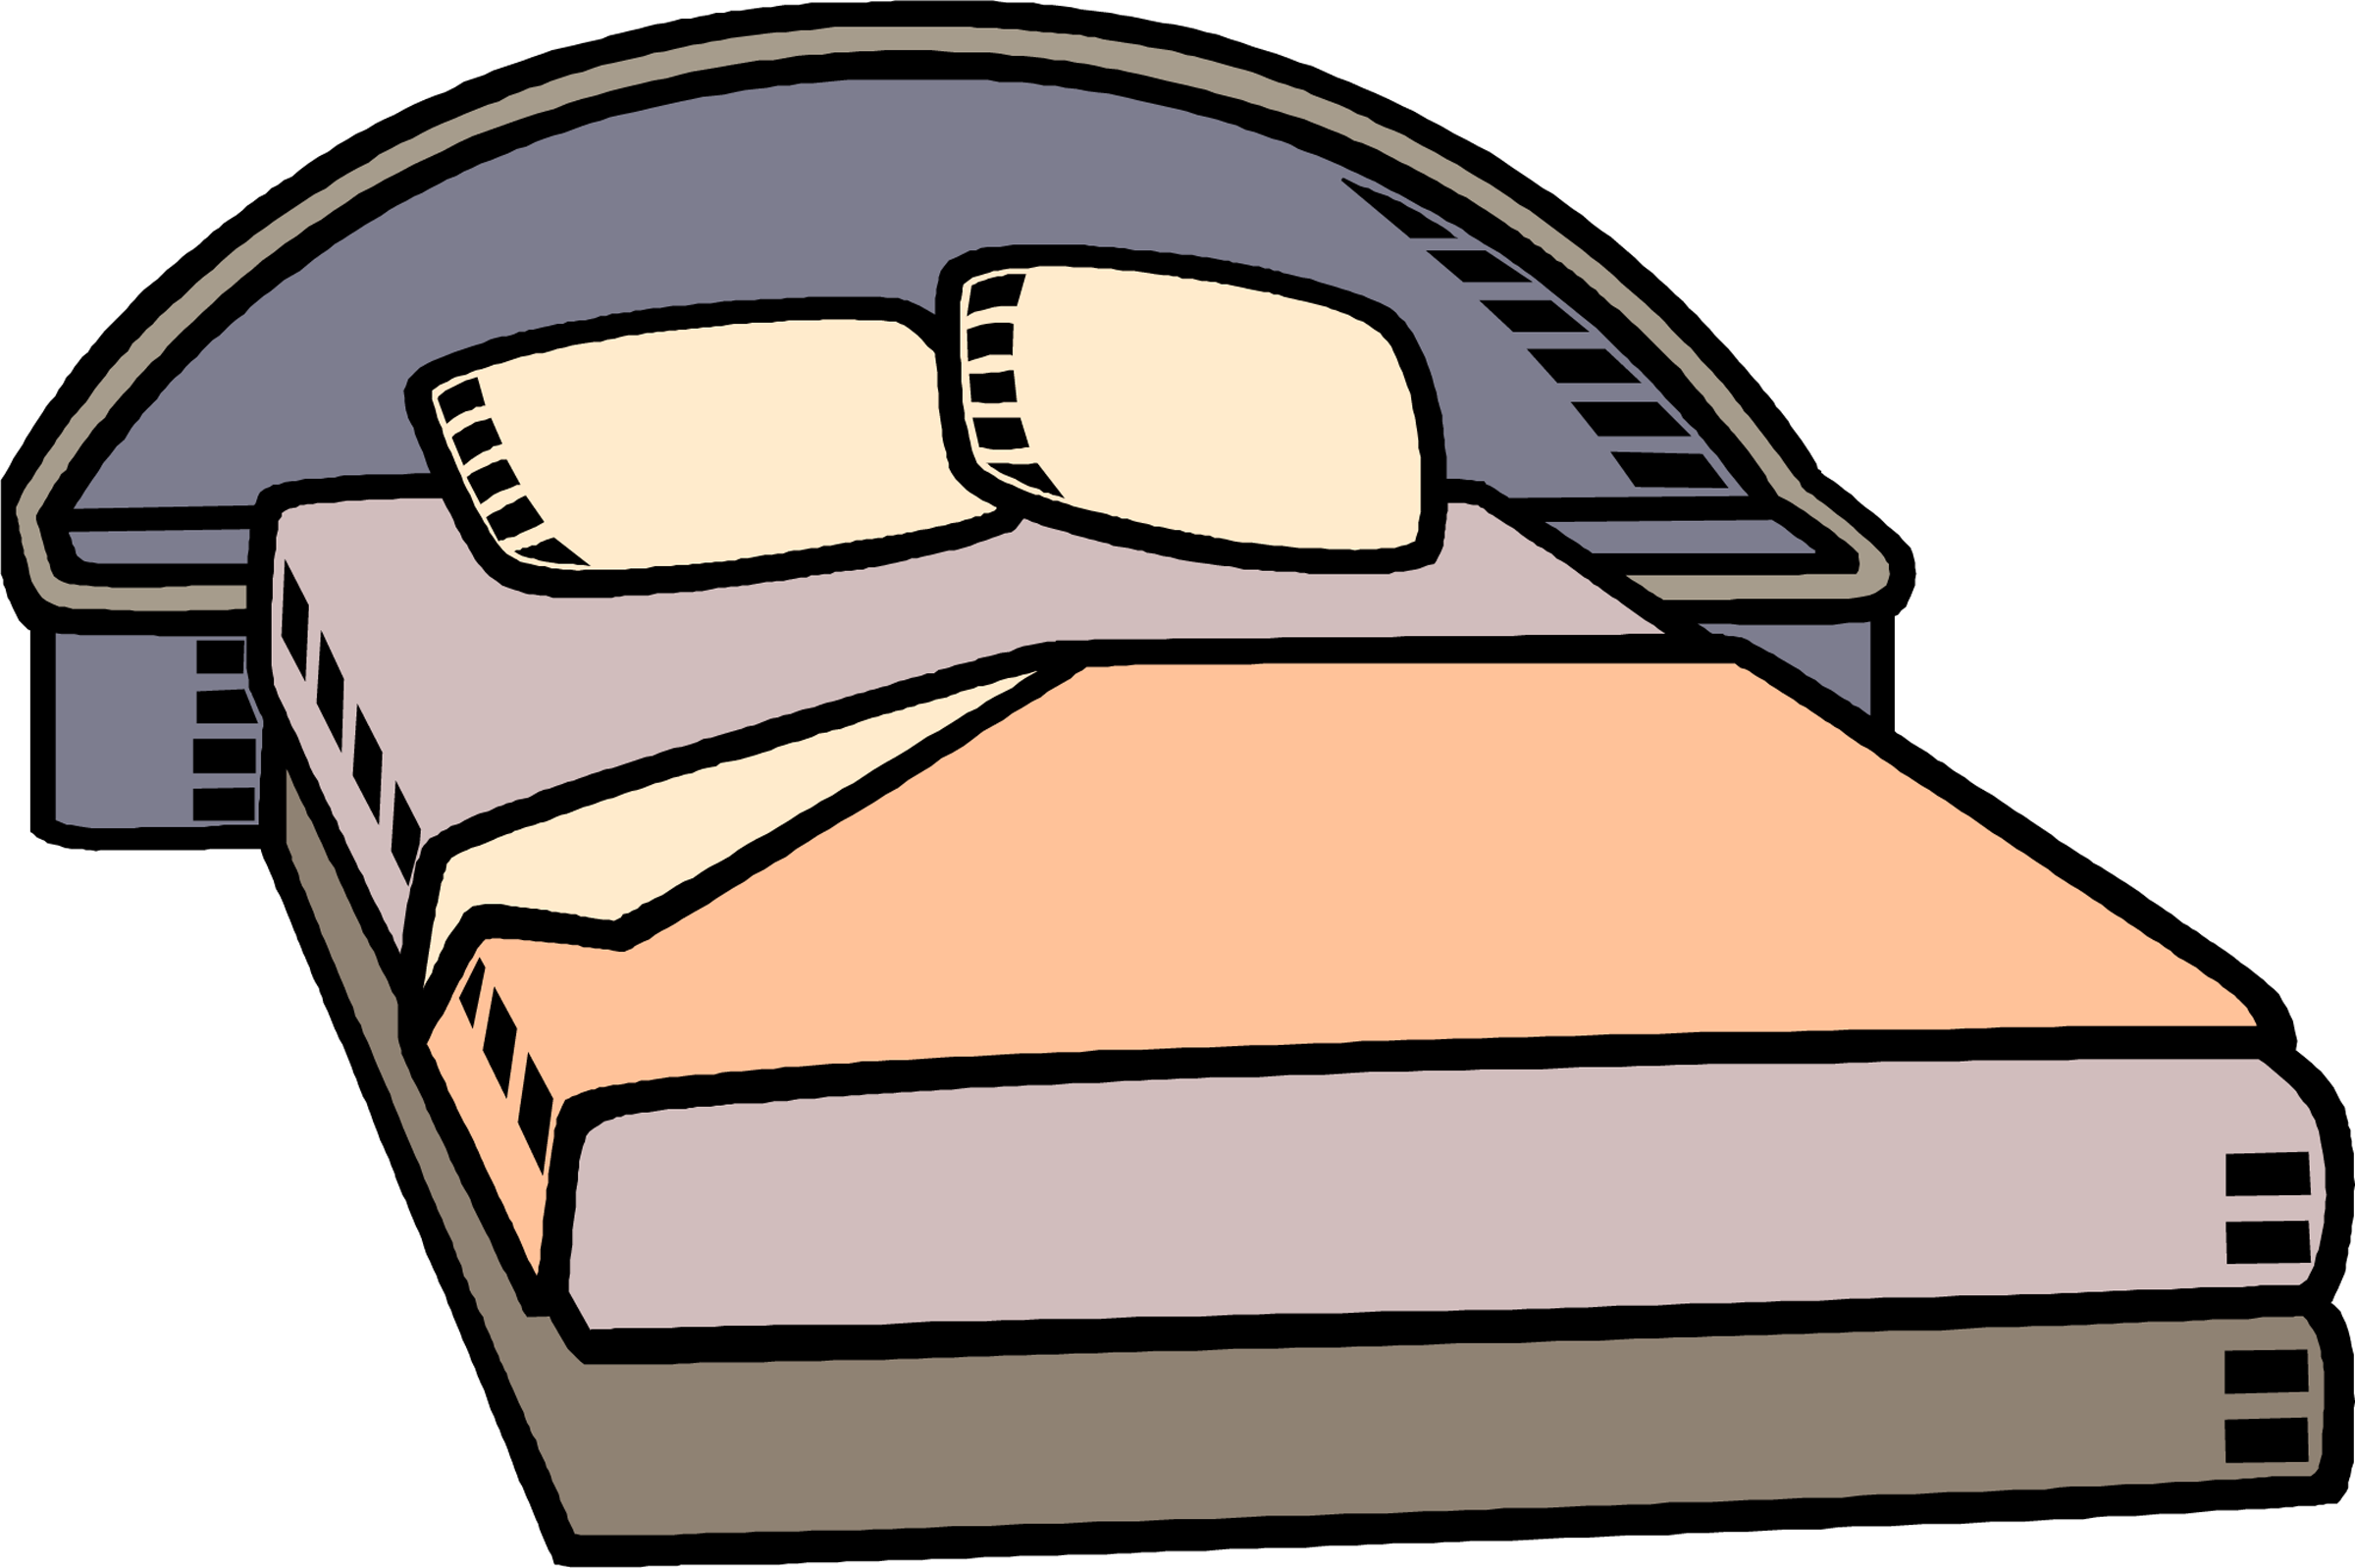 Make bed clipart free images 3 3